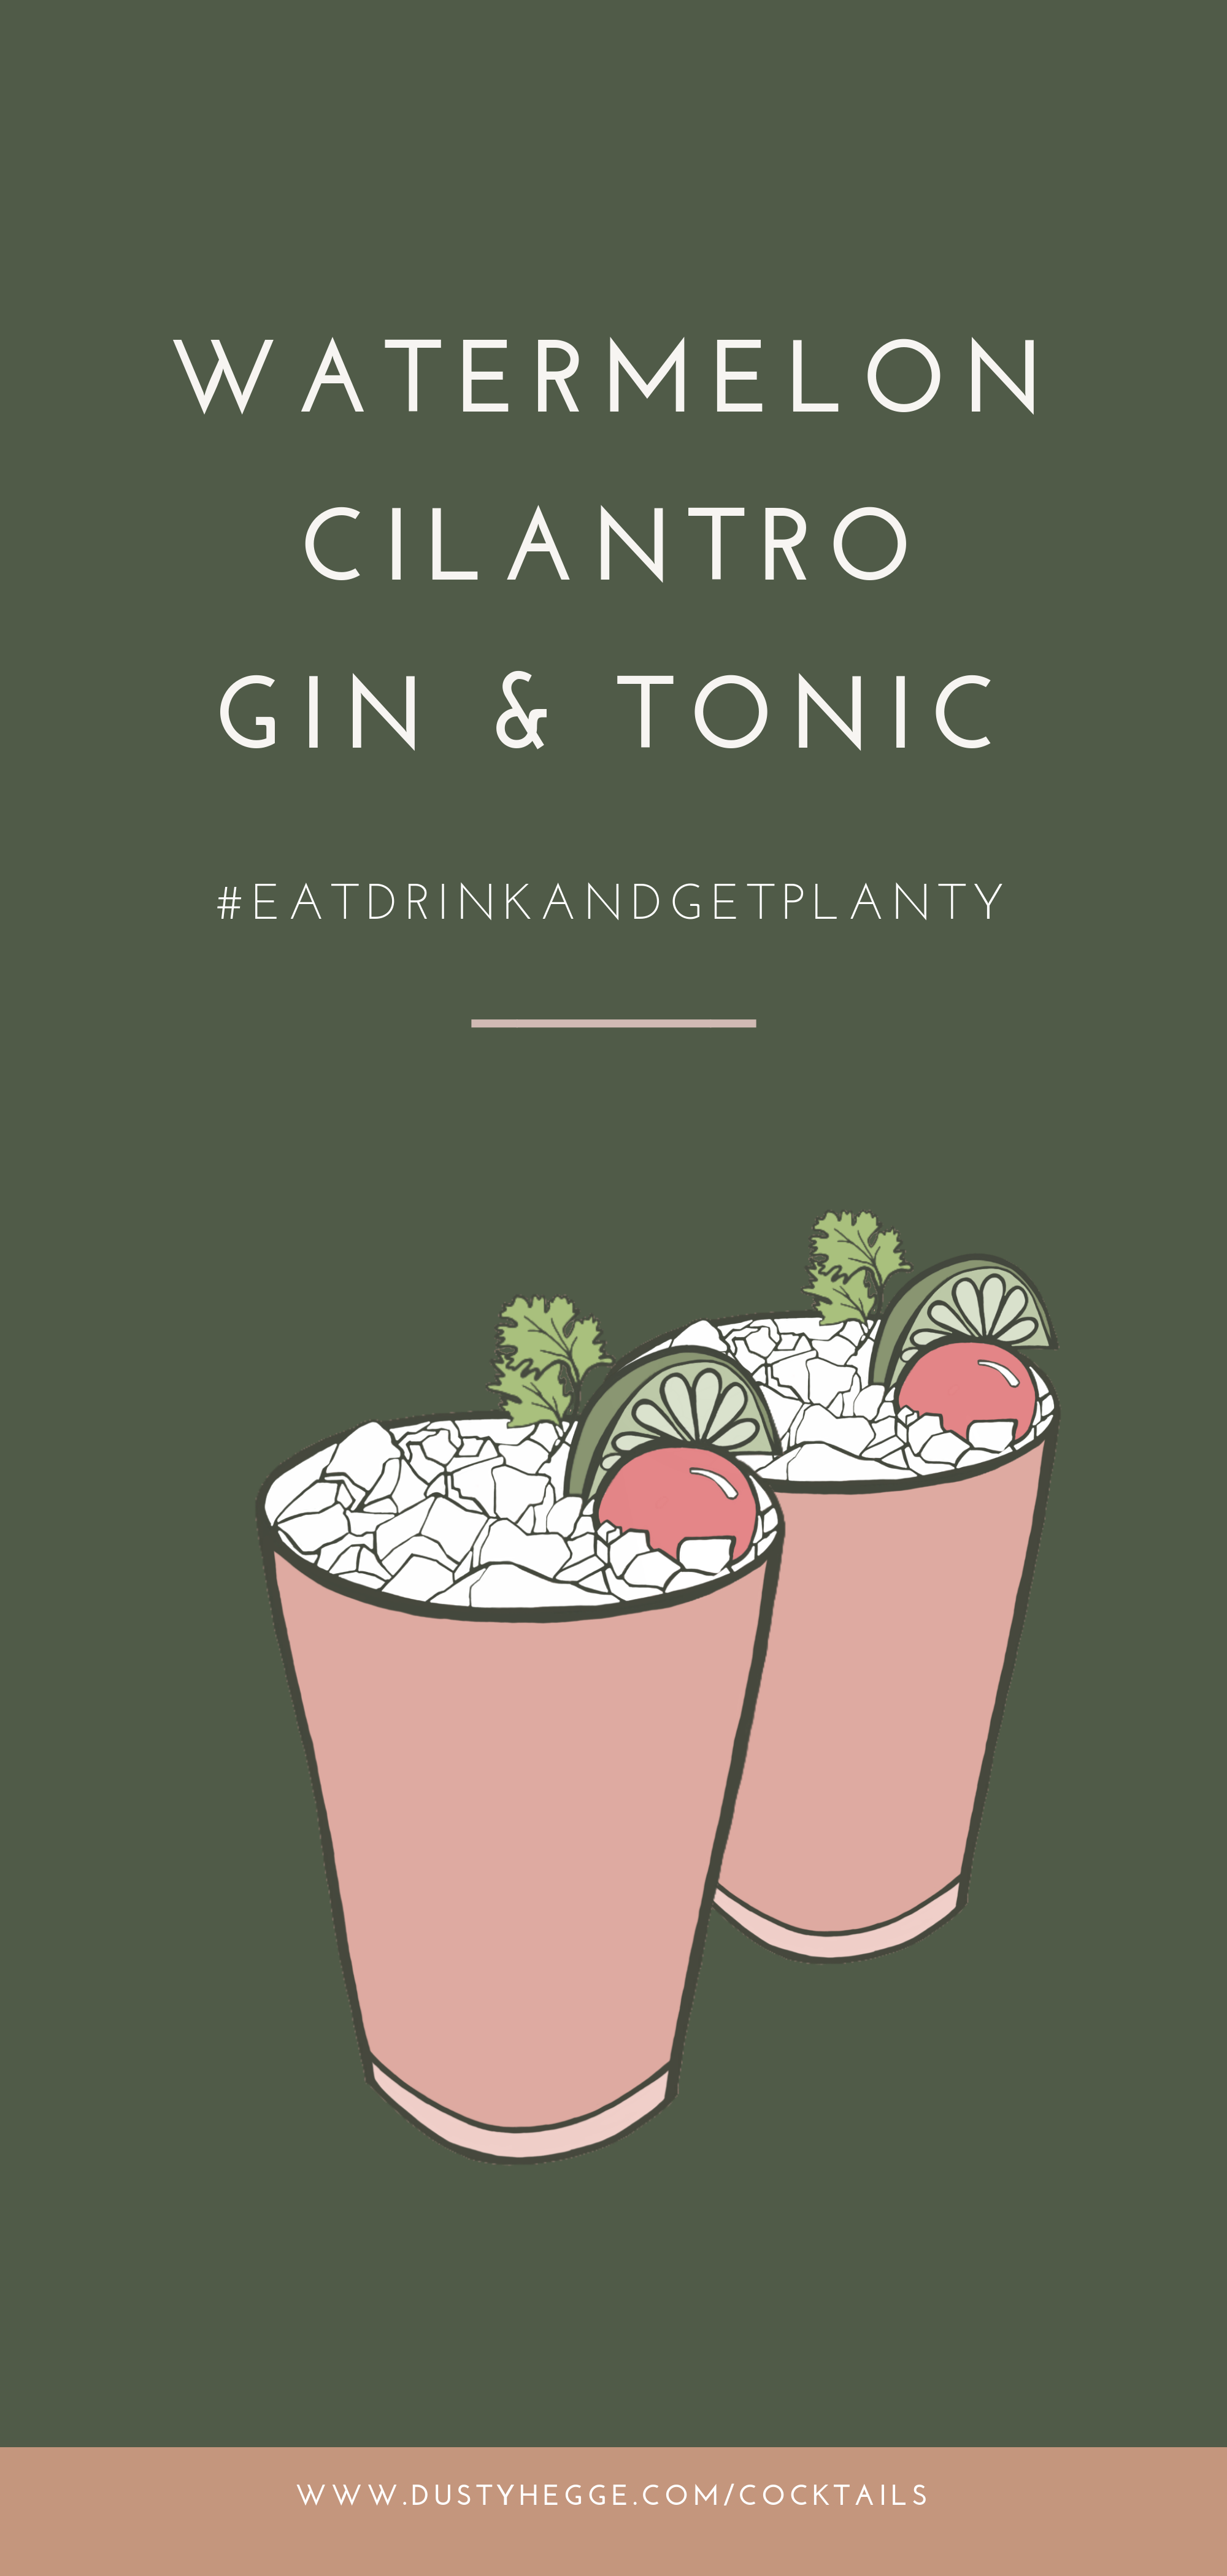 Watermelon Cilantro Lime Gin and Tonic by Dusty Hegge #eatdrinkandgetplanty